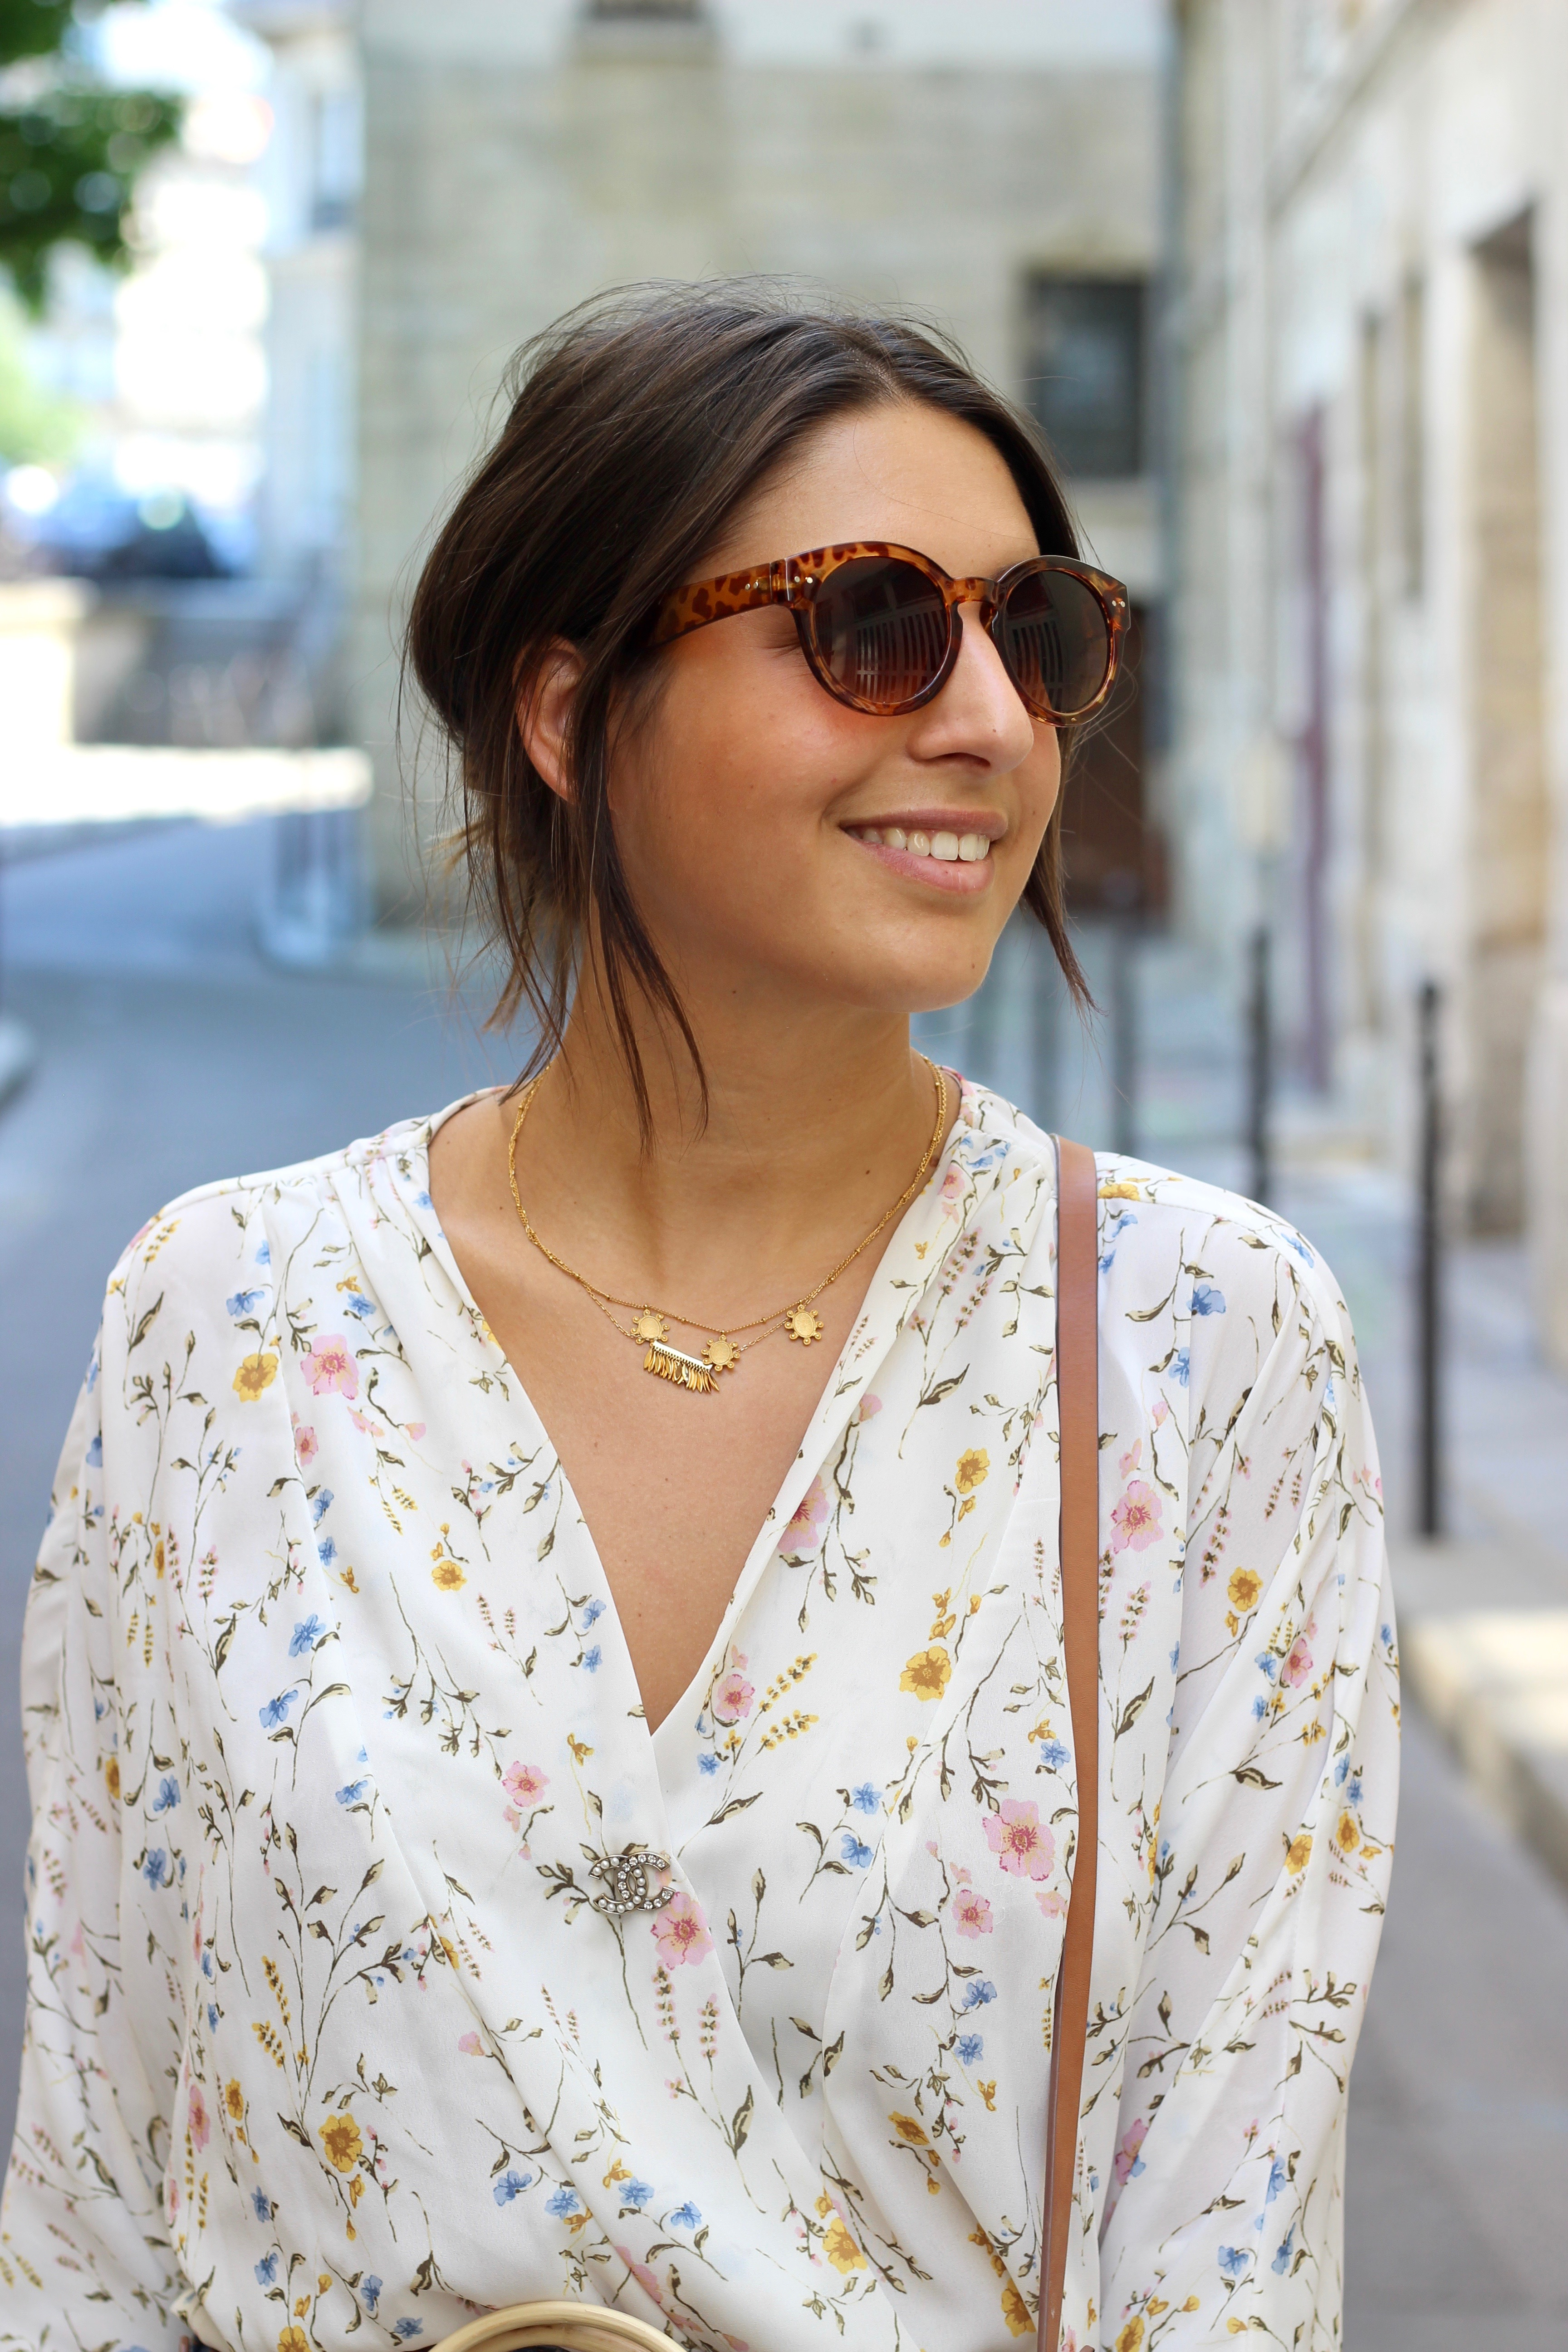 Blog-This-kind-of-Girl-Look-Une-tenue-tout-en-paillettes1